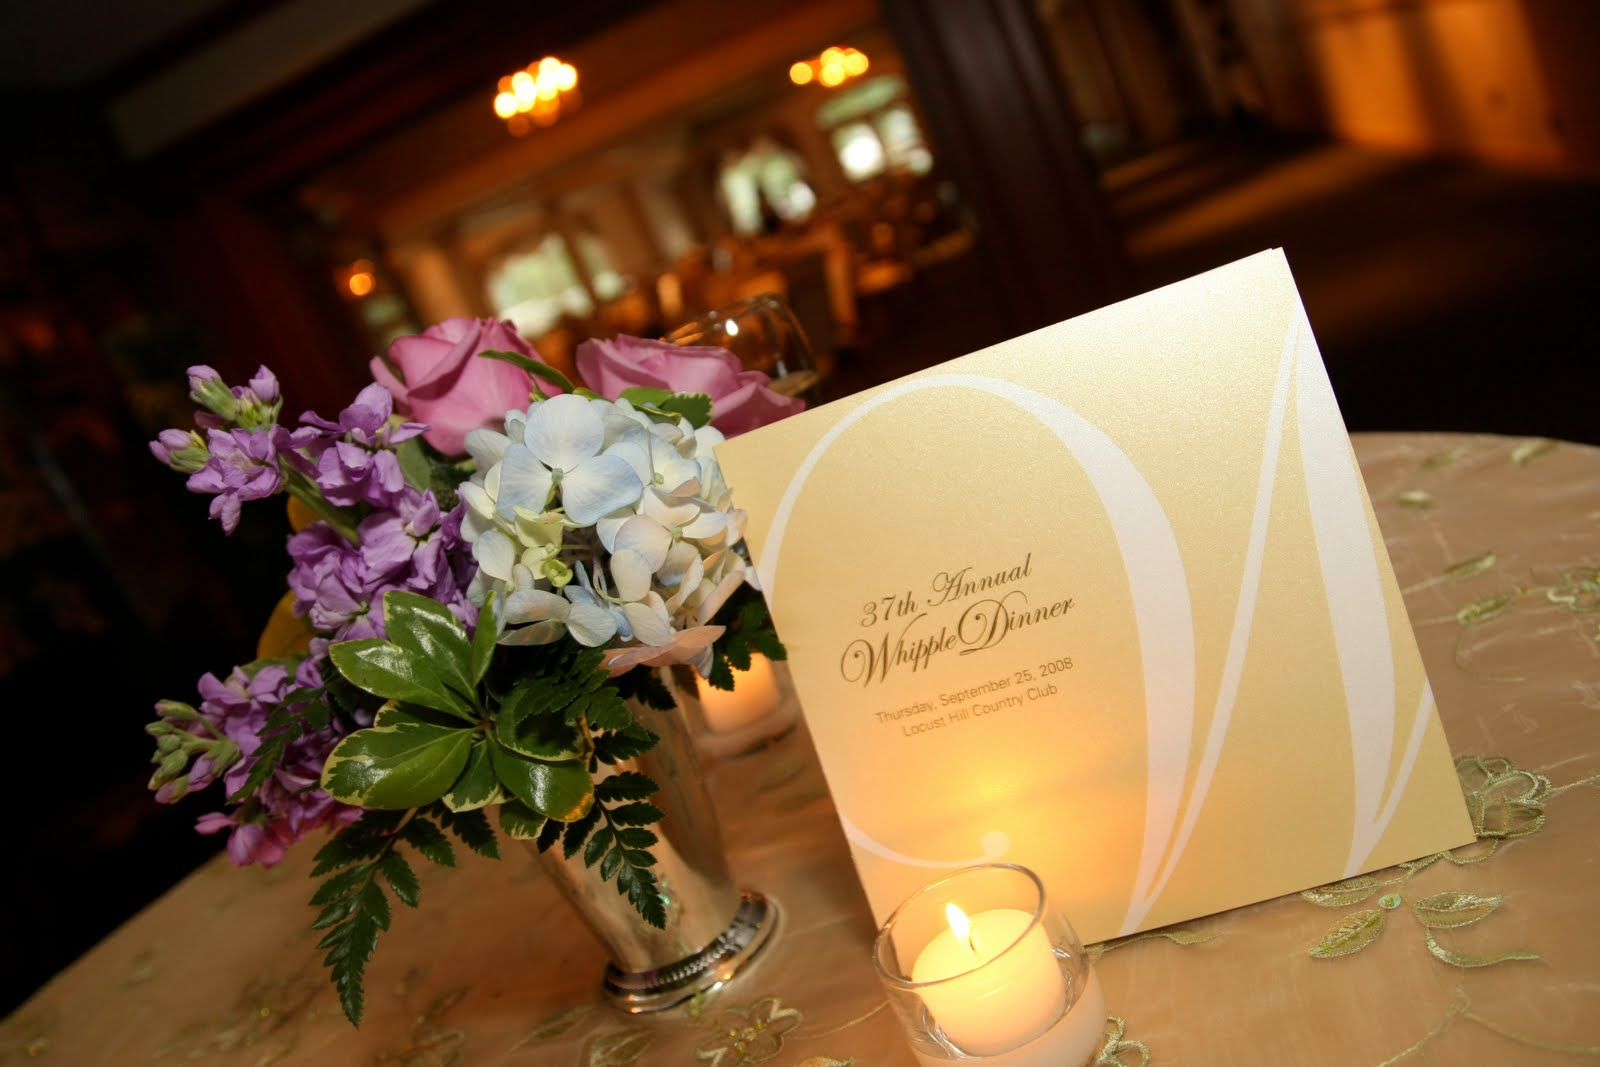 invite on table next to flowers. Invite illuminated by candle